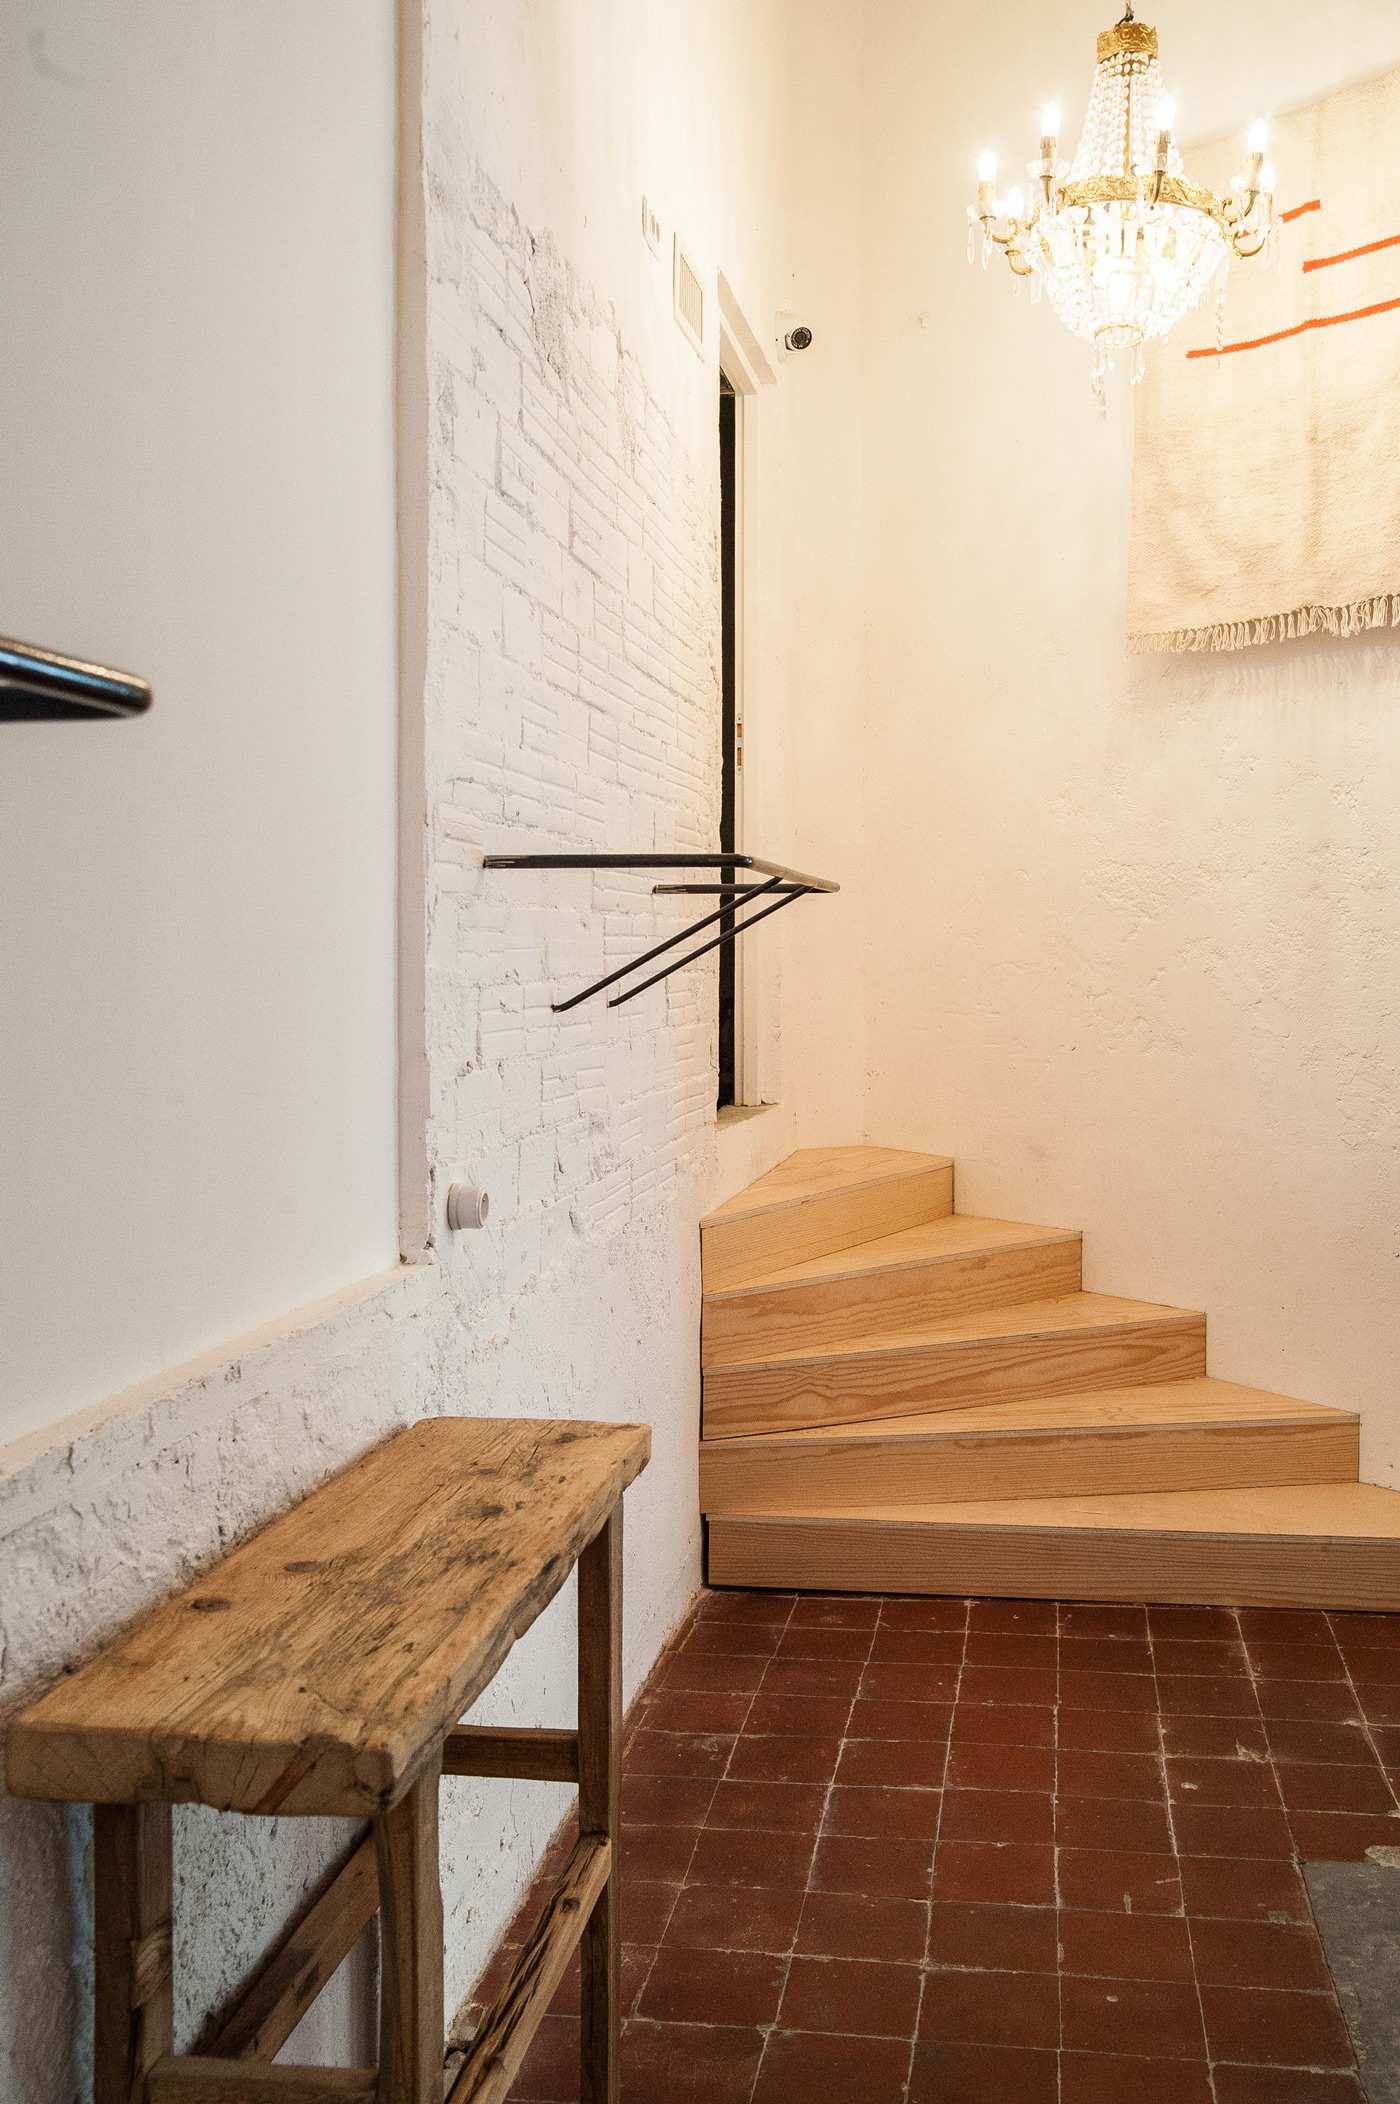 Shop and Exhibition Space in Marseille / Atelier M3a Architectes (3)